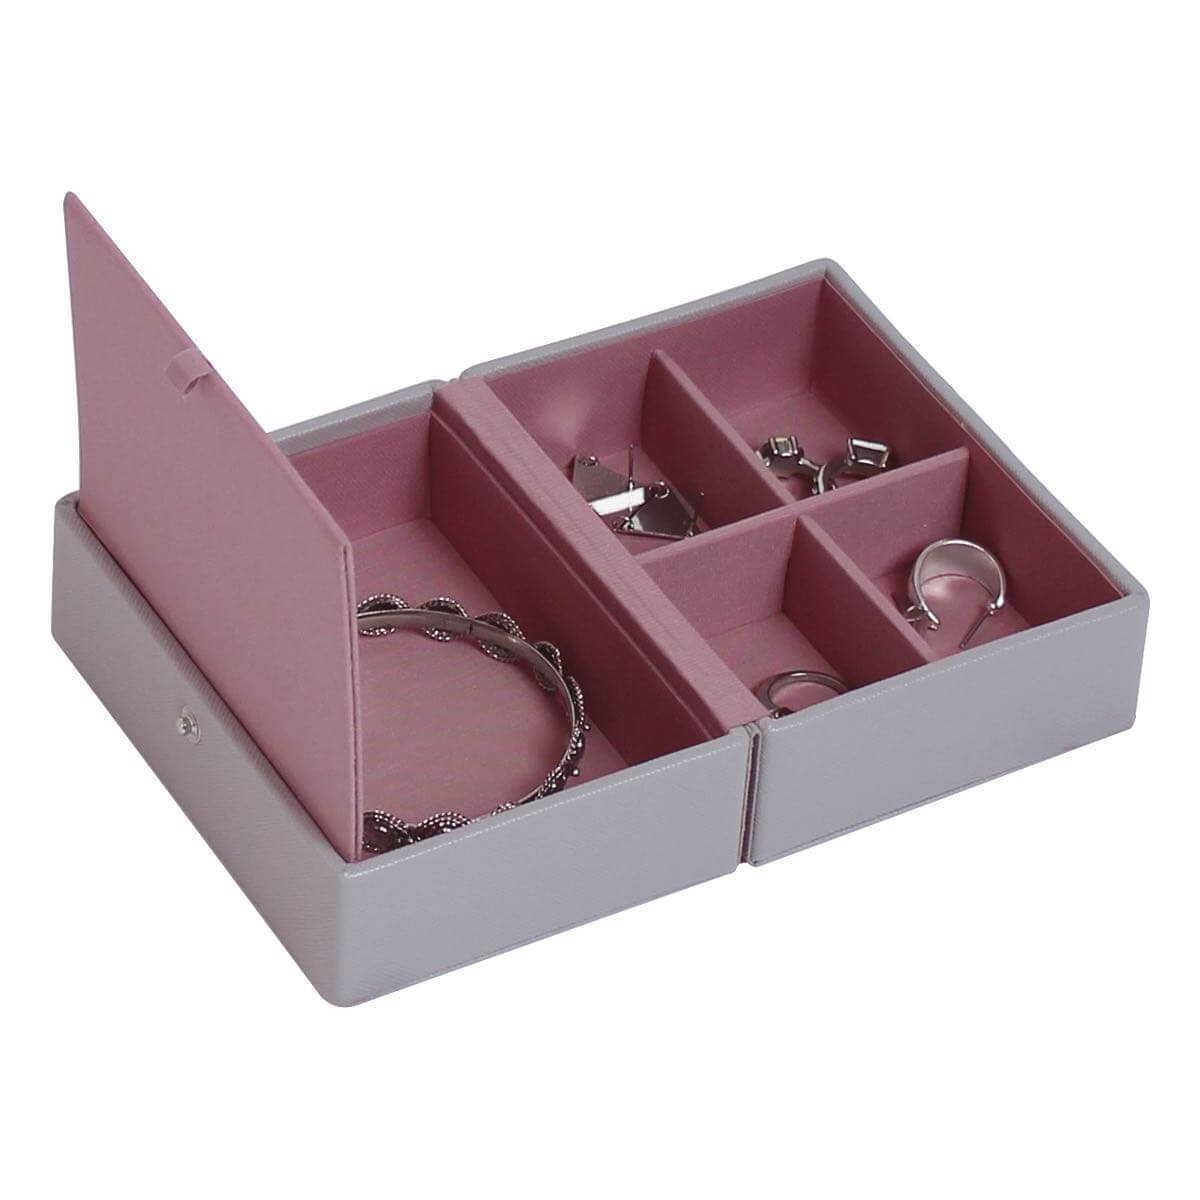 Stackers | Jewelry Box | dove gray & antique rose pink travel box stacker accessory